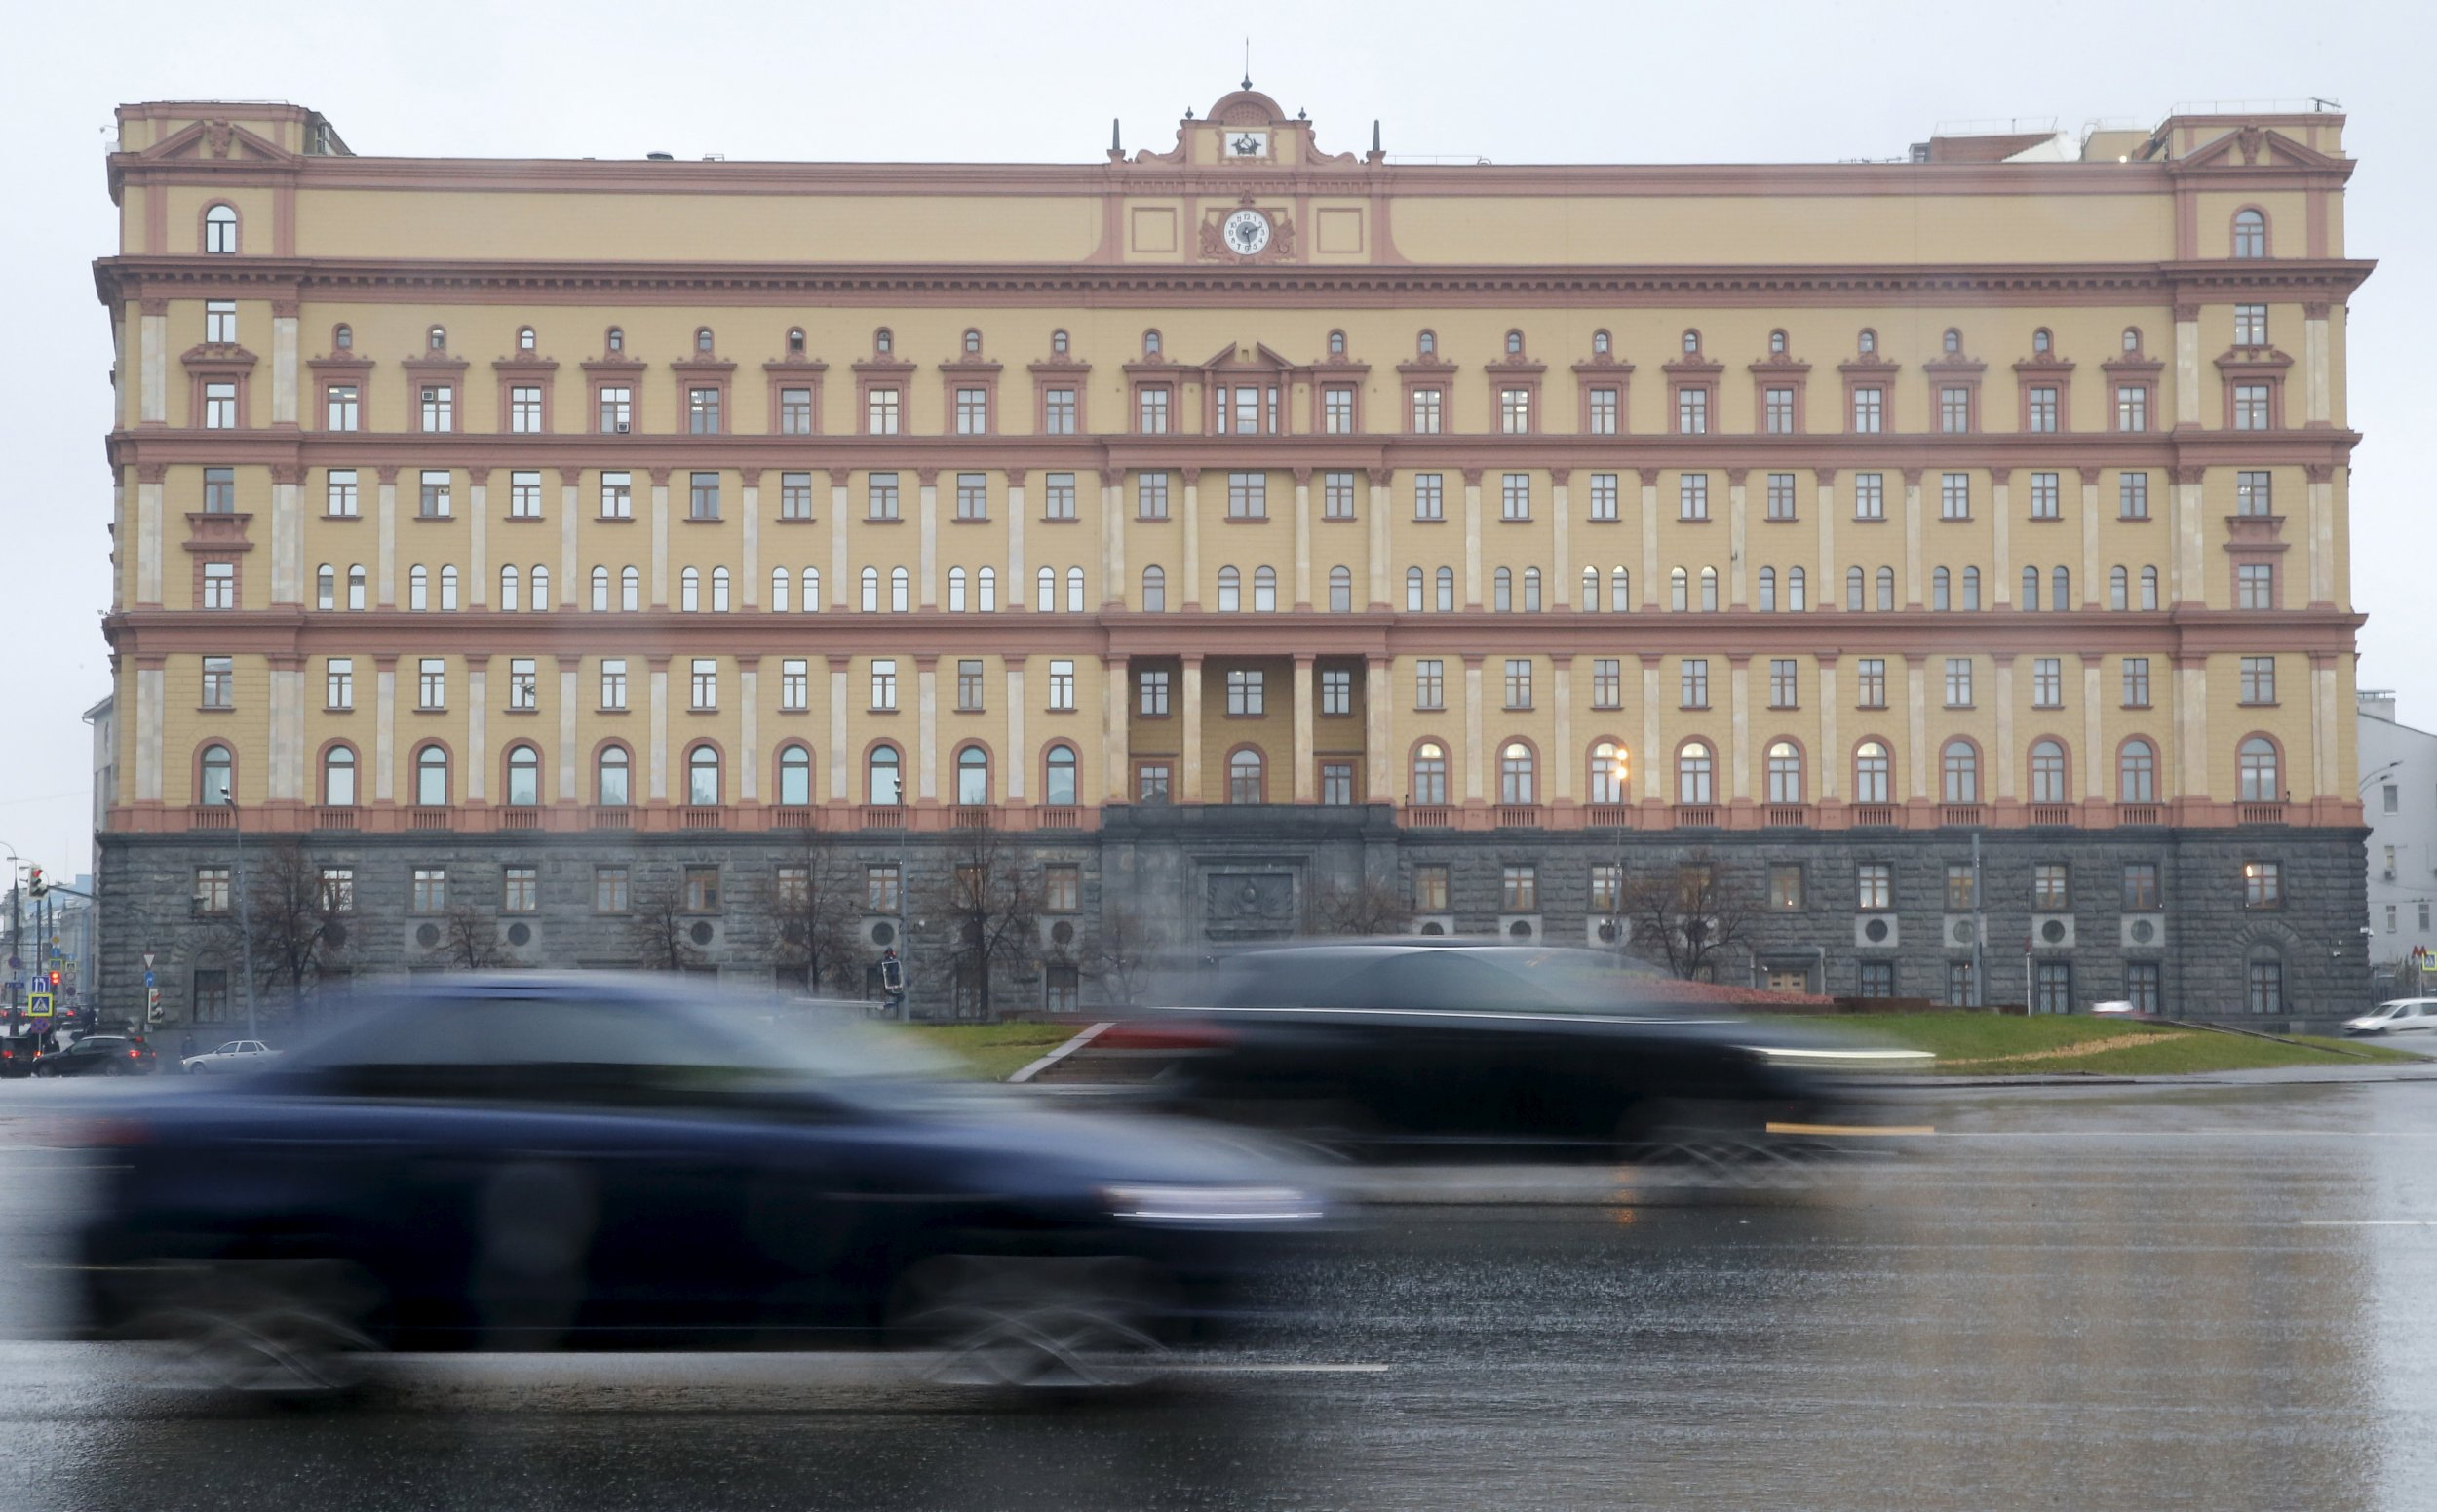 FSB headquarters in the Lubyanka, Moscow